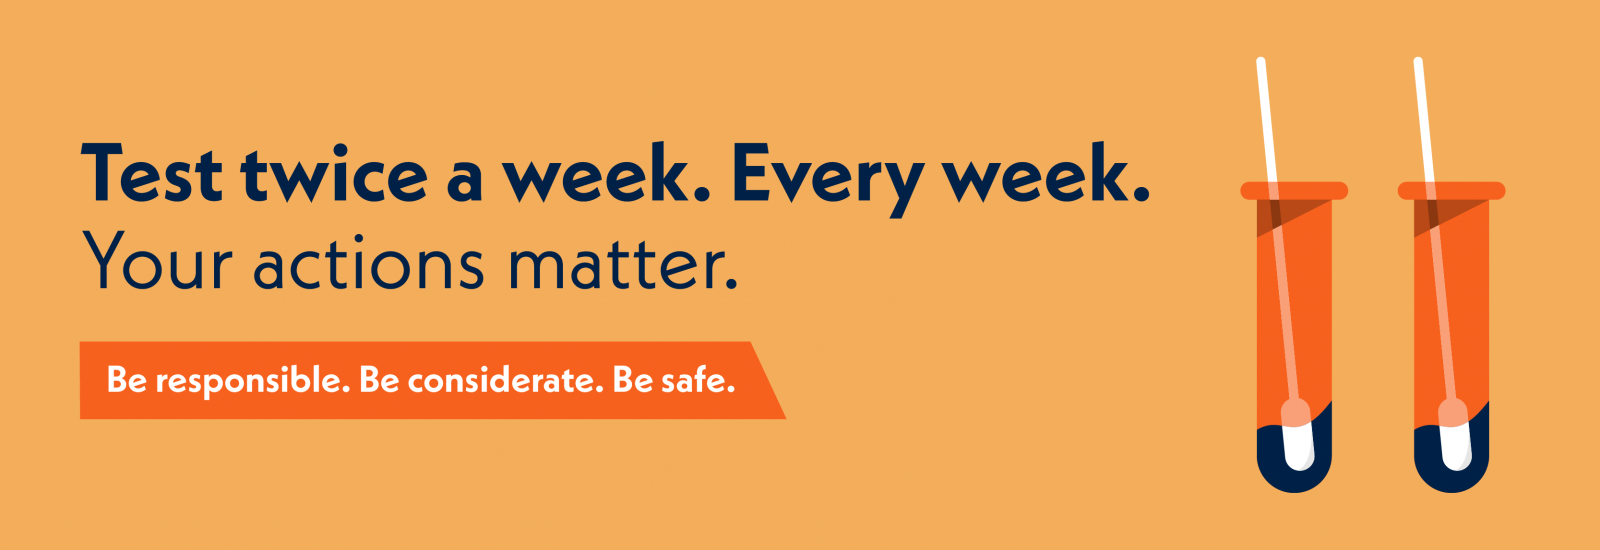 Test twice a week. Every week. Your actions matter. Help keep everyone safe